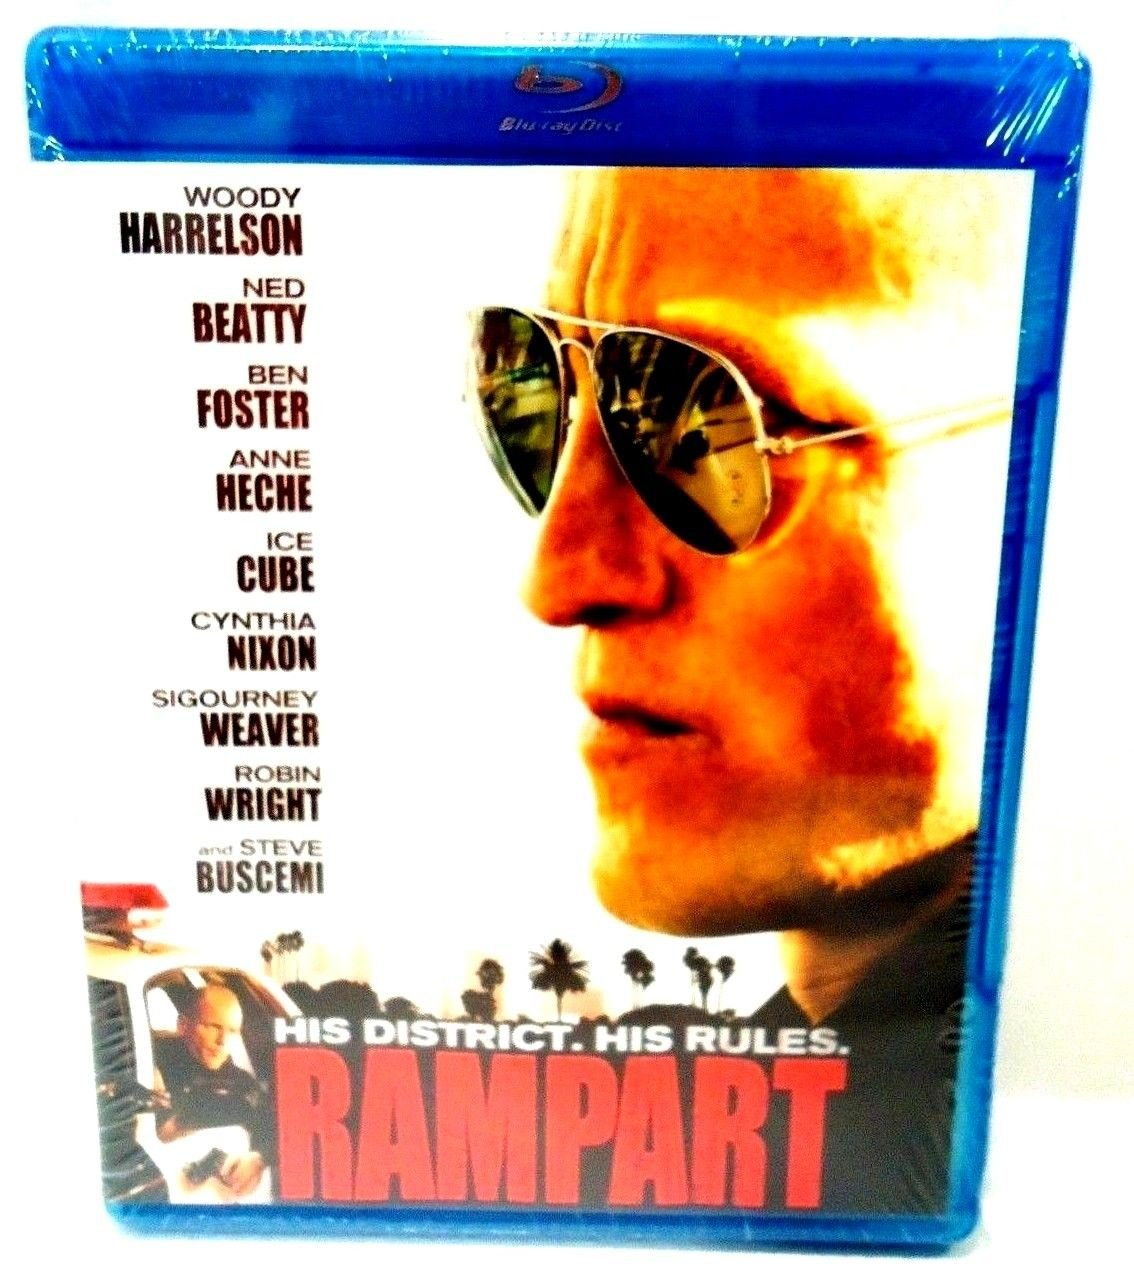 RAMPART - BLU-RAY - DVD - WOODY HARRELSON - ICE CUBE - BRAND NEW - CRIME - MOVIE